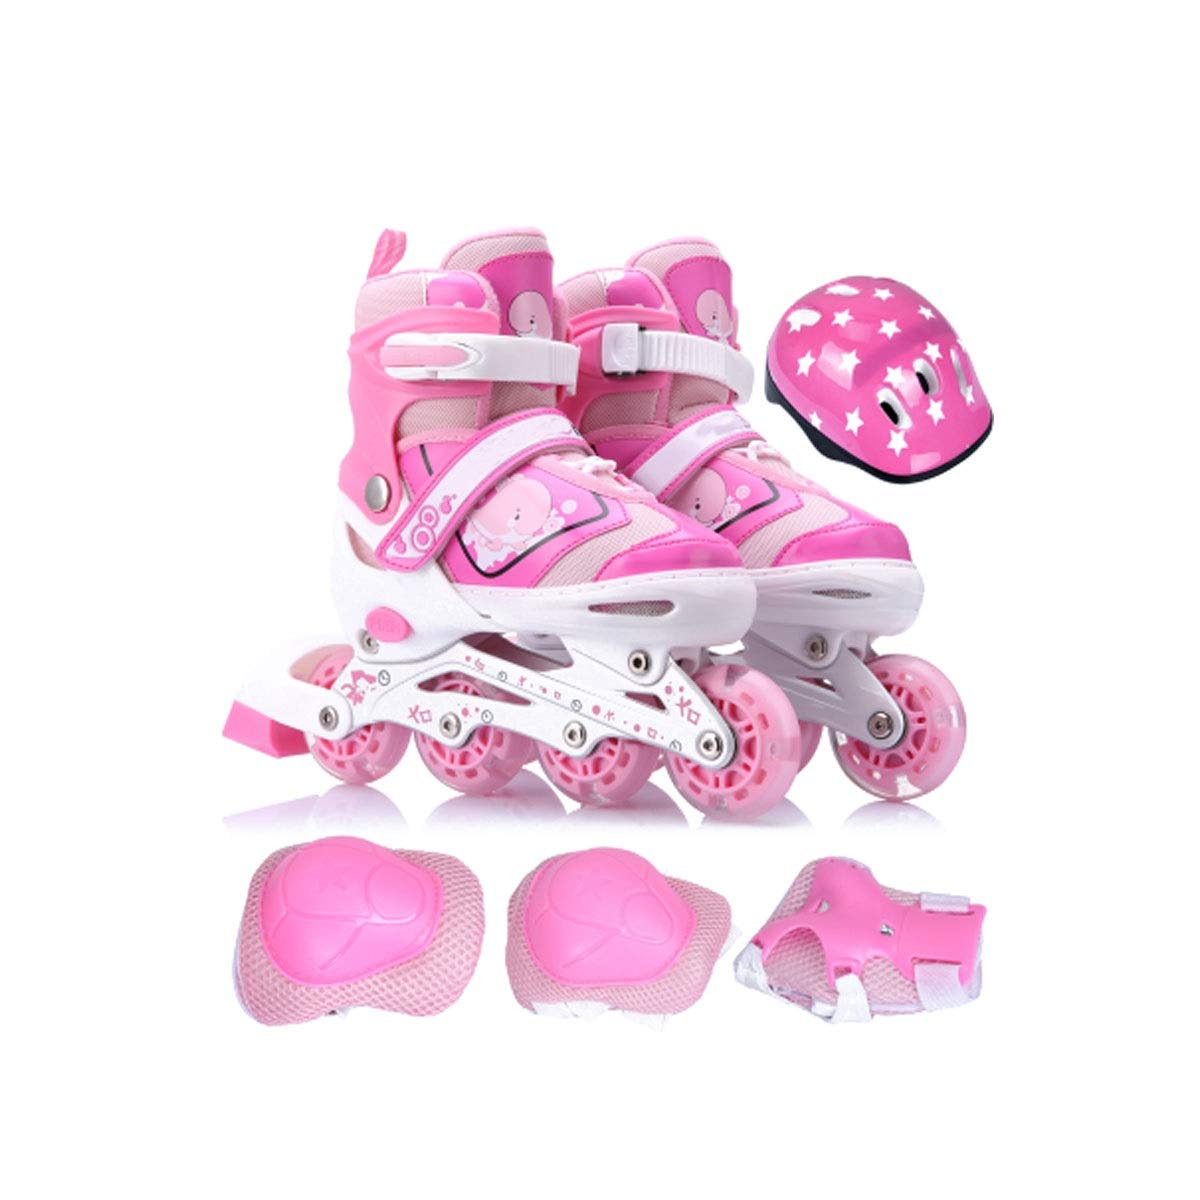 Hengxiang Fitness Inline Skates, Kid's Outdoor Skates, Four Wheels Adjustable Size, High Load Bearing Aluminum Bracket, PP Fiber Material Shoe Shell, Excellent Gift for 3 Years Old to Teenagers, Pink